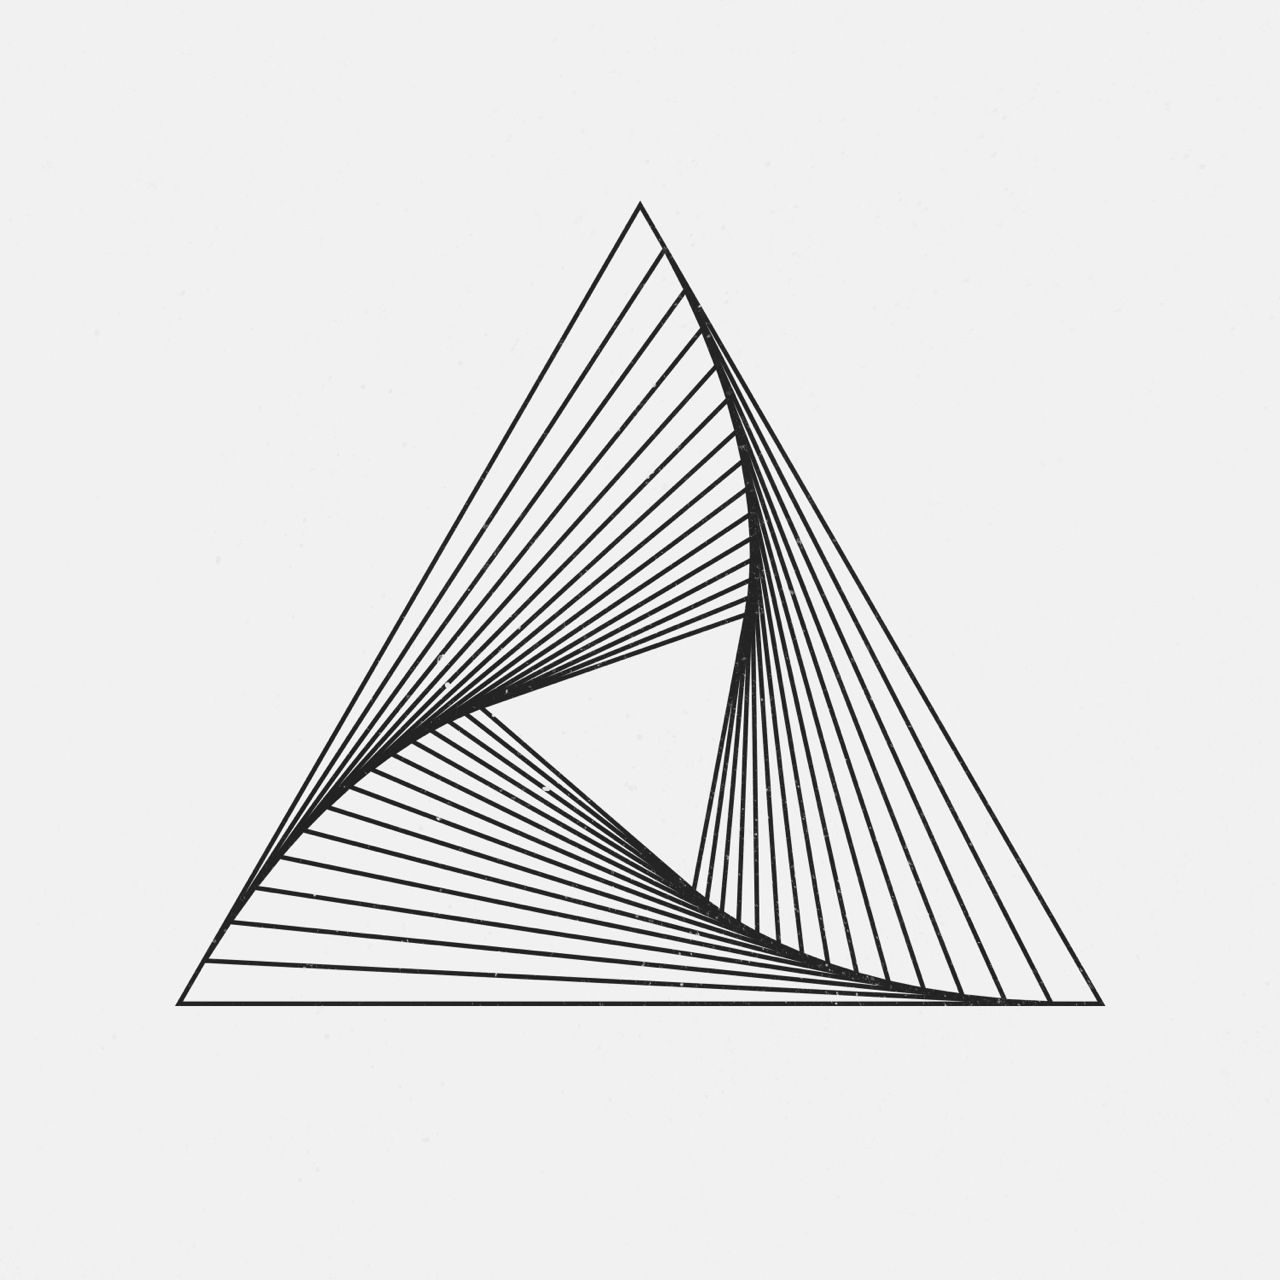 MA15-146 A new geometric design every day. | tatoo | Pinterest ... for Geometric Shapes Design Black And White  269ane